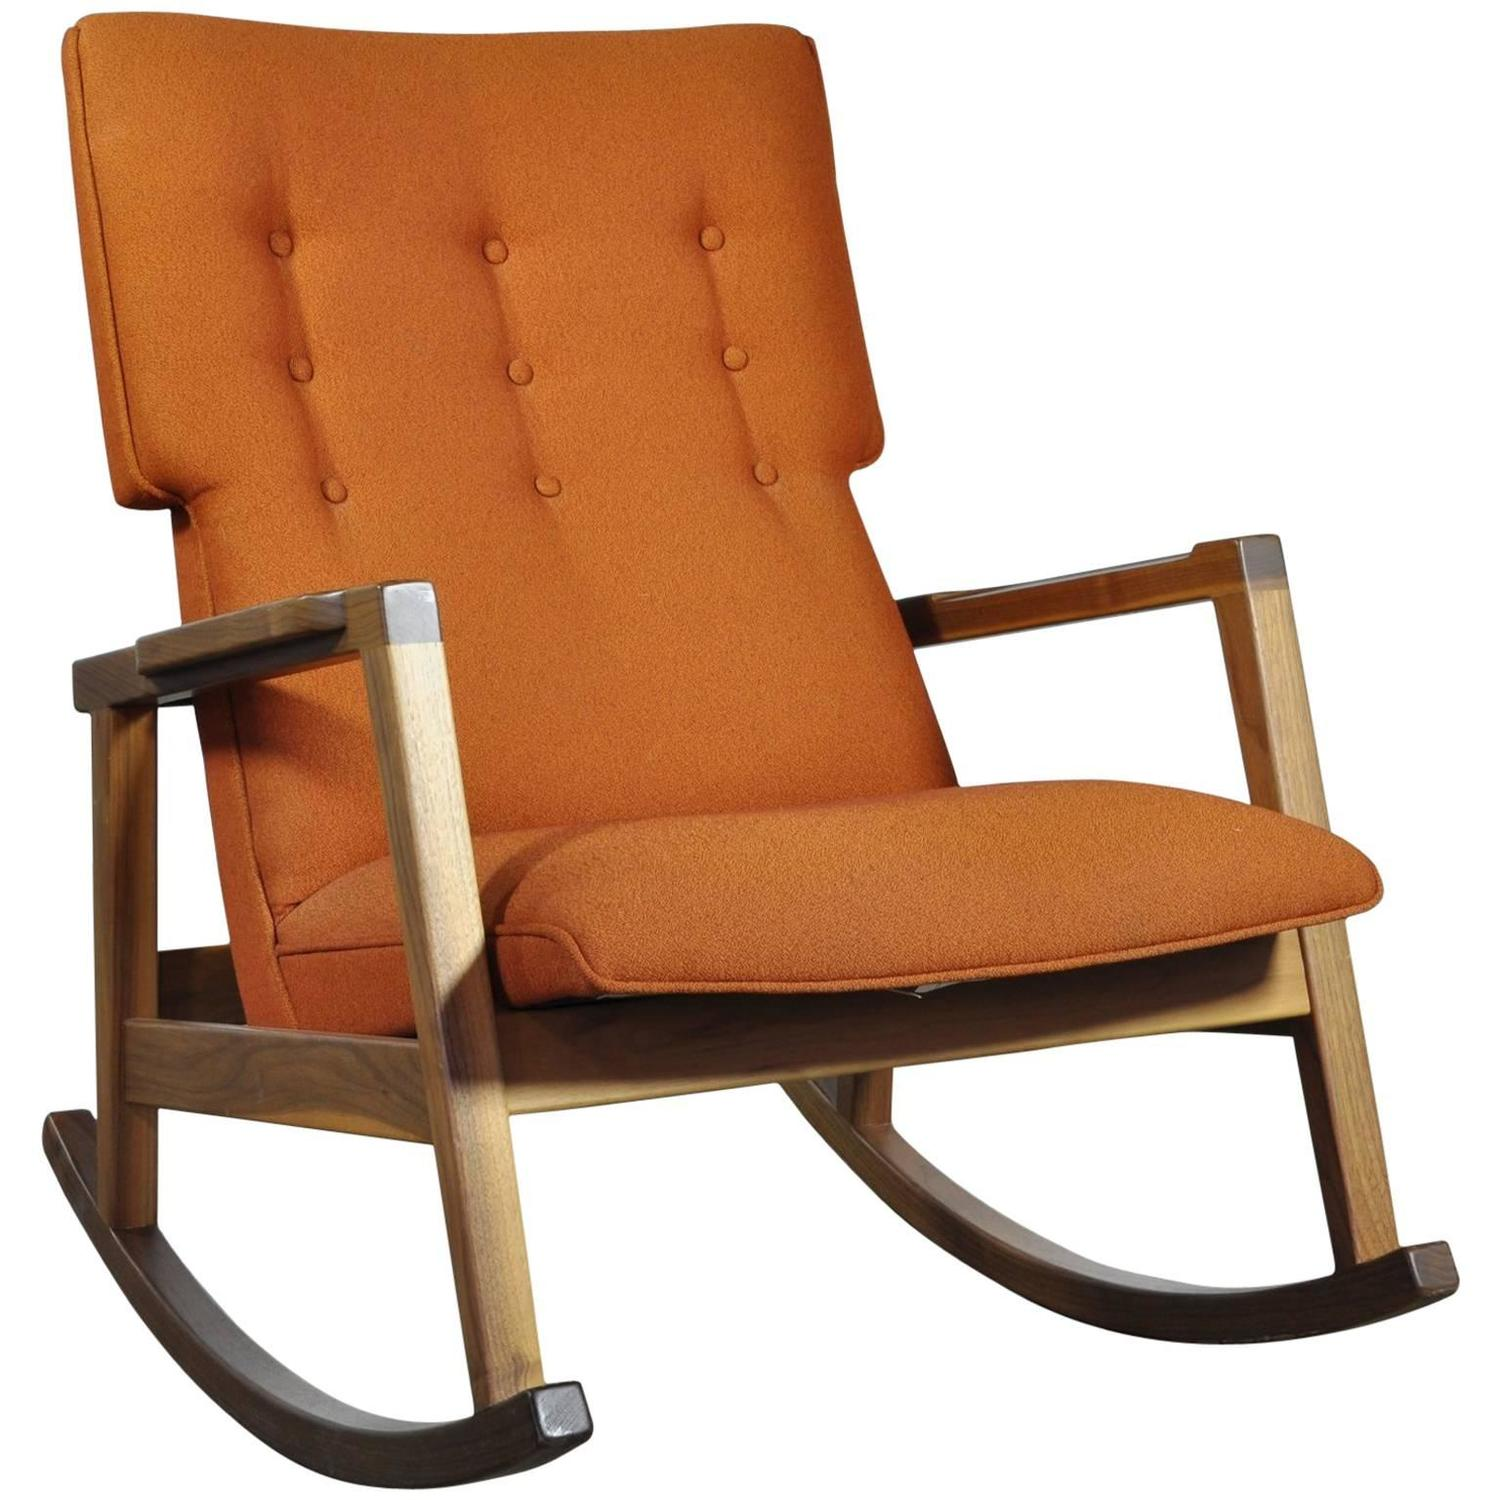 walnut with wool fabric jens risom rocker chair for dwr for sale